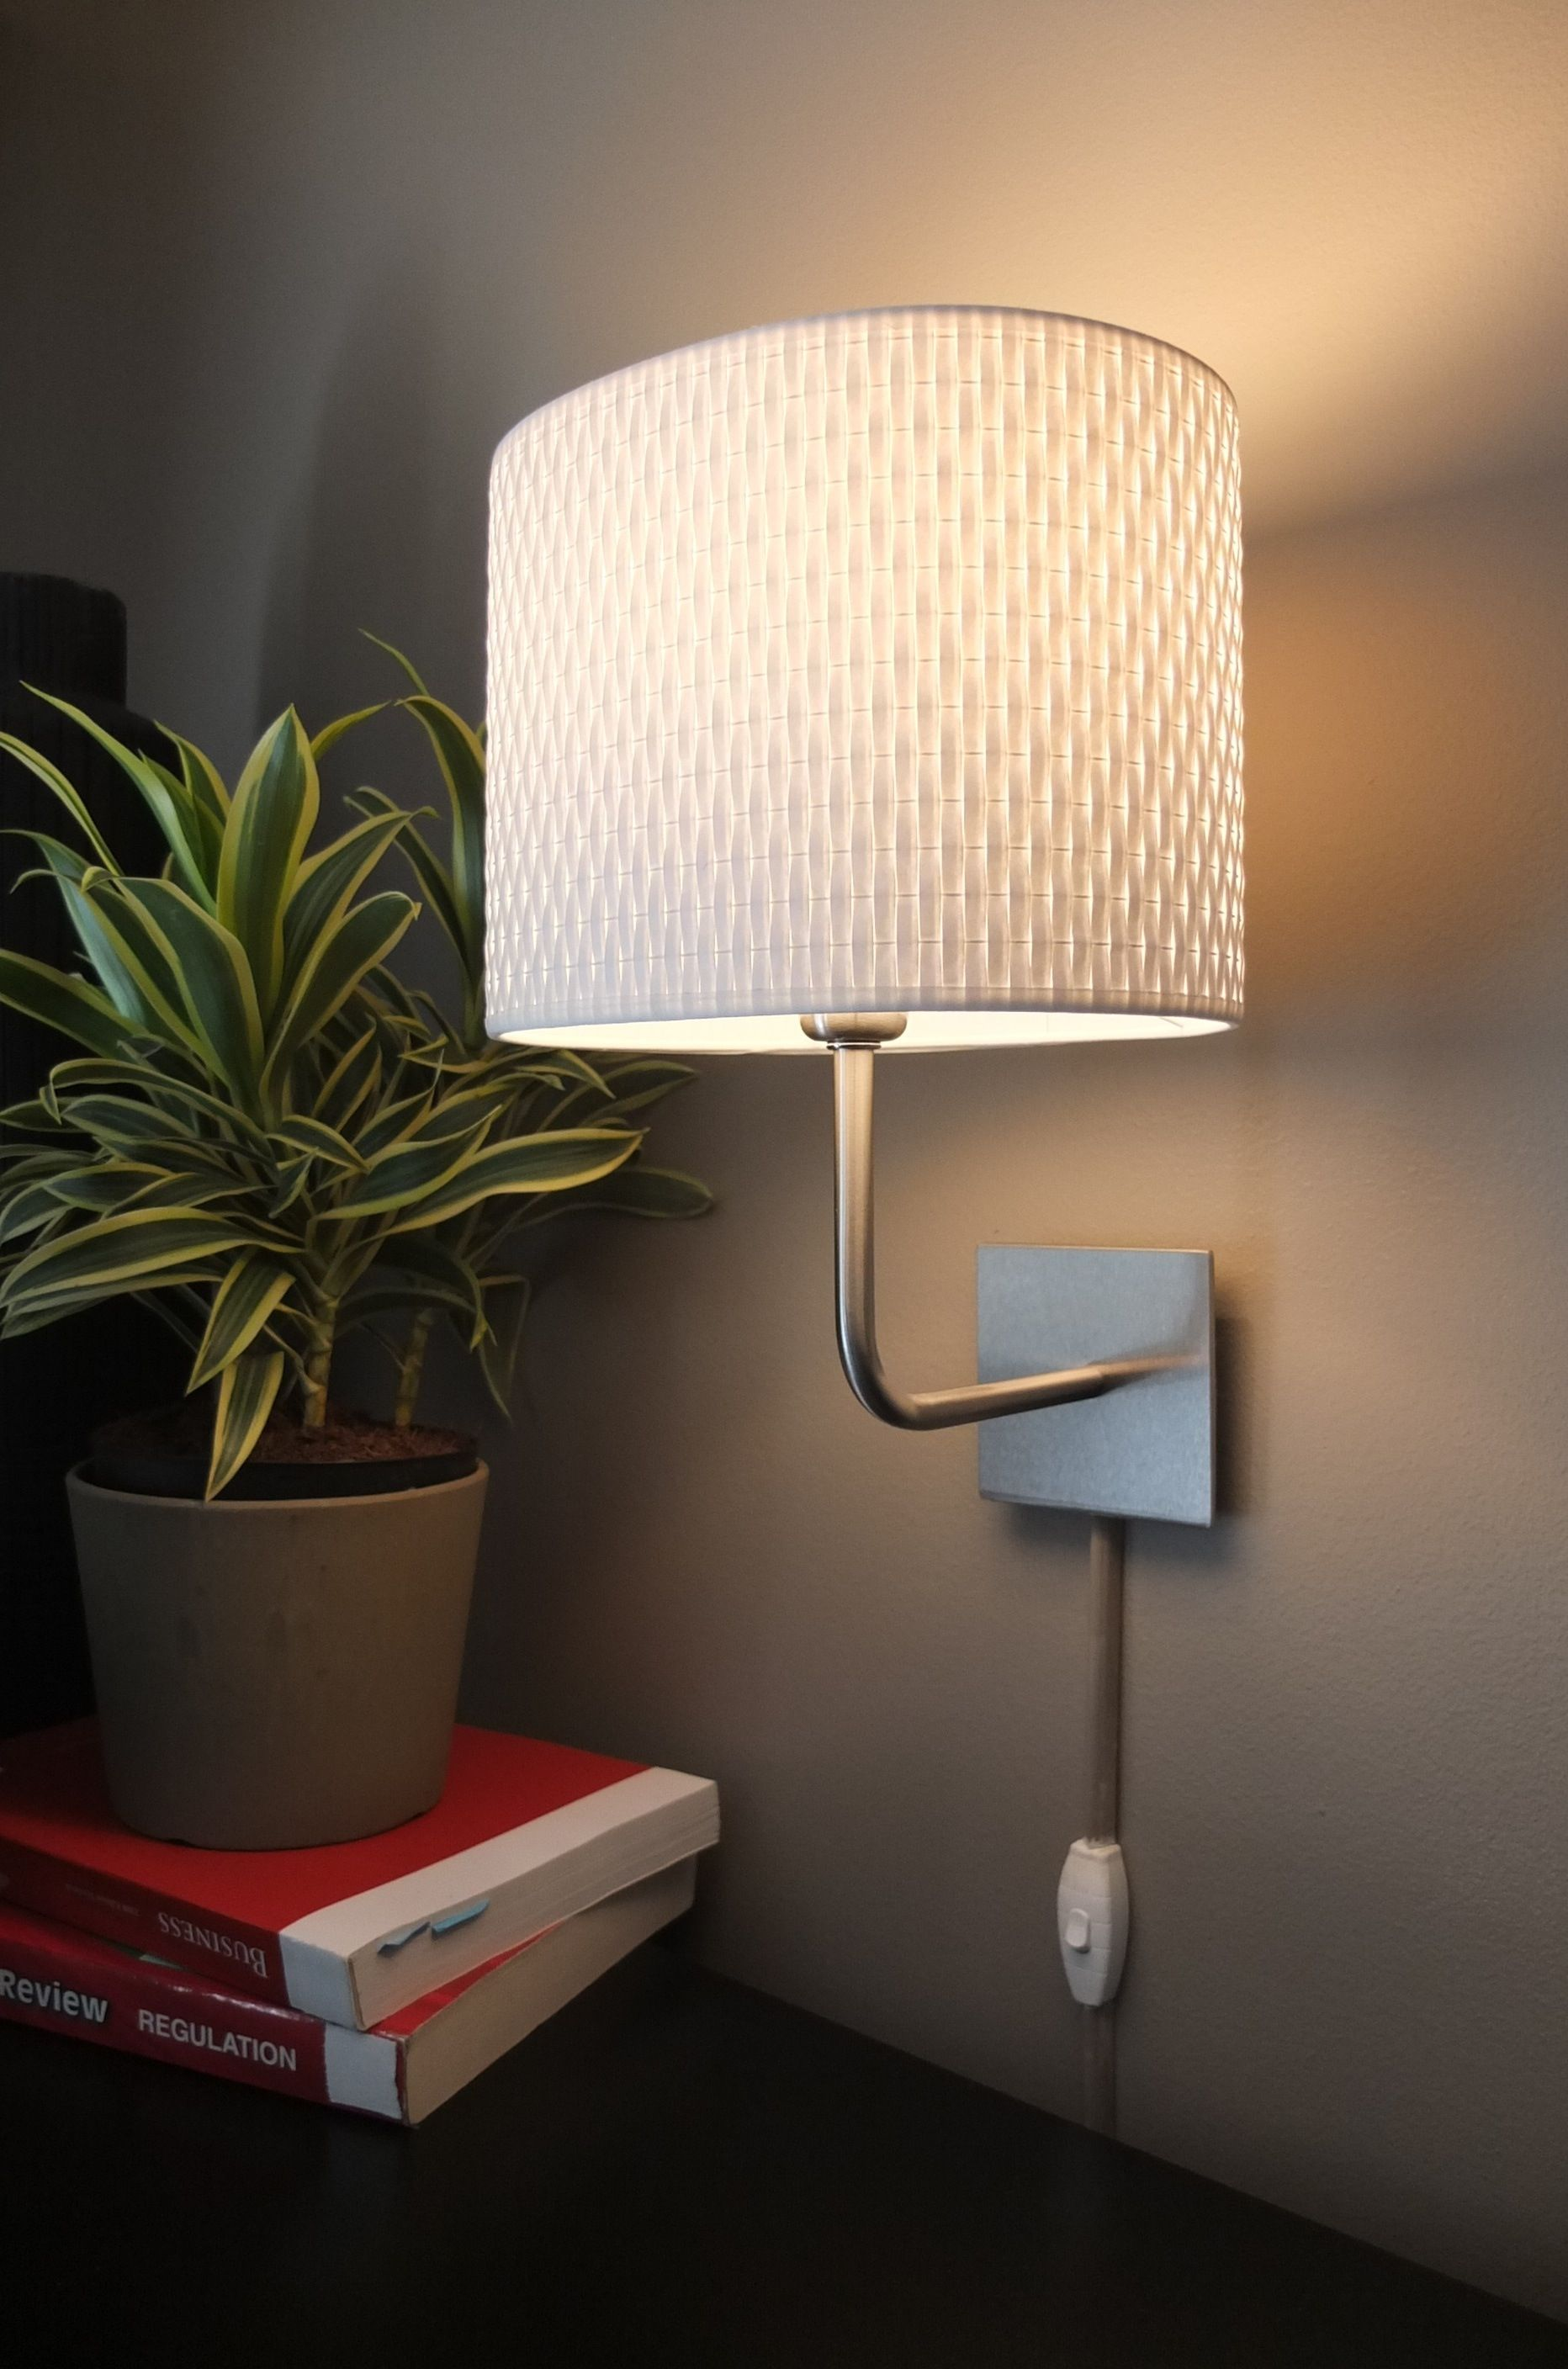 Wall mounted ikea lamps are an easy way to add light in a room wall mounted ikea lamps are an easy way to add light in a room without a ceiling fixture alng has two color choices and a coordinating floor and table mozeypictures Image collections